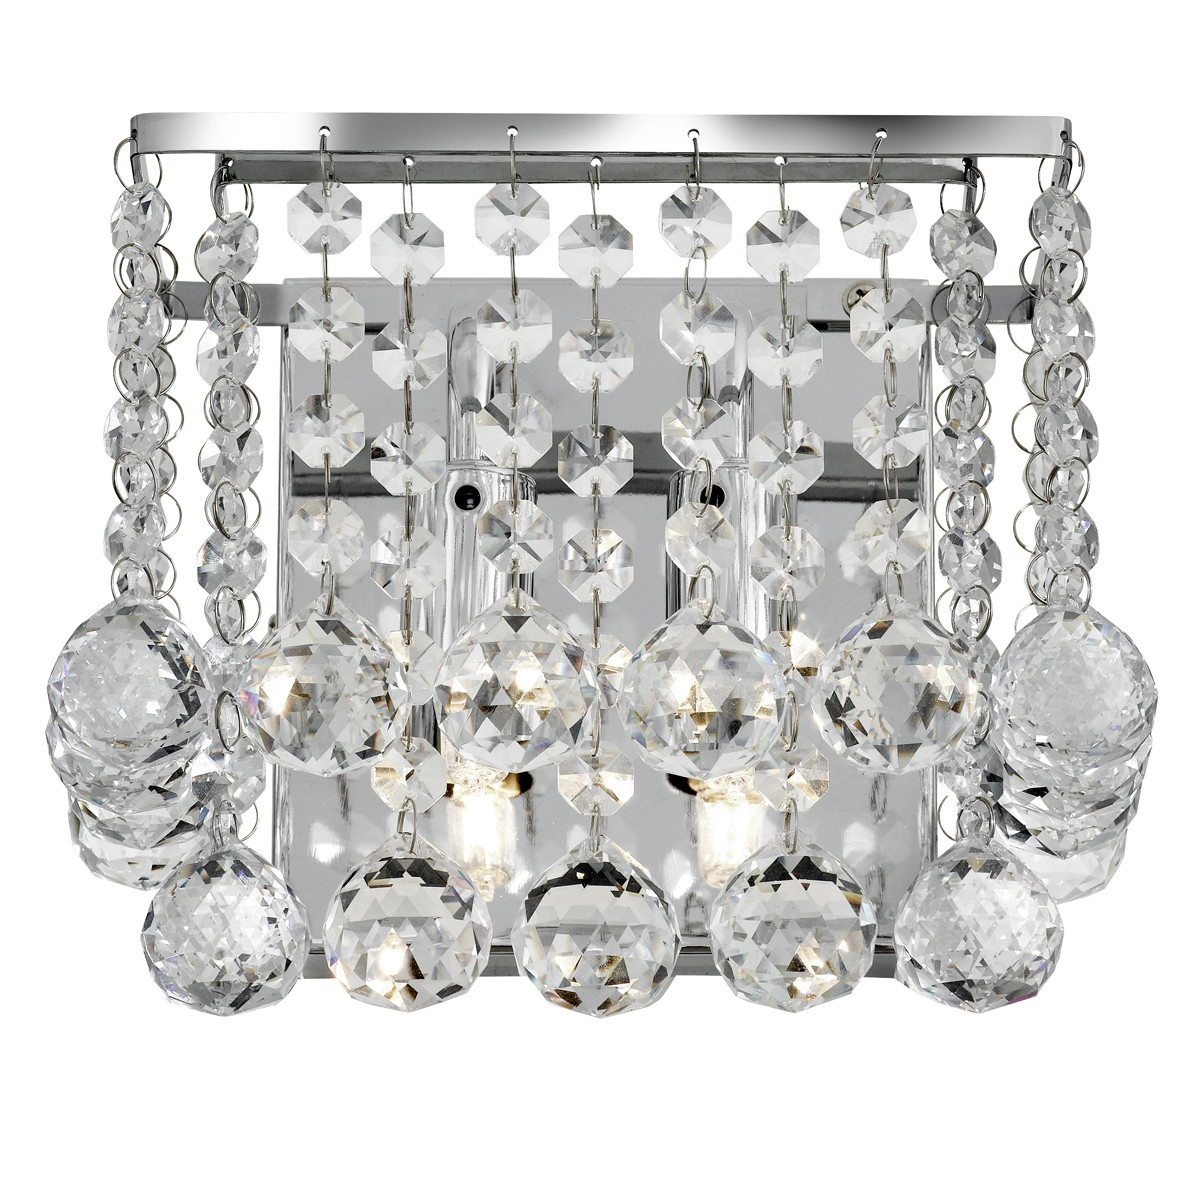 Hanna Chrome 2 Light Square Wall Bracket With Clear Crystal Balls 5402 2cc Stanways Stoves And Lights